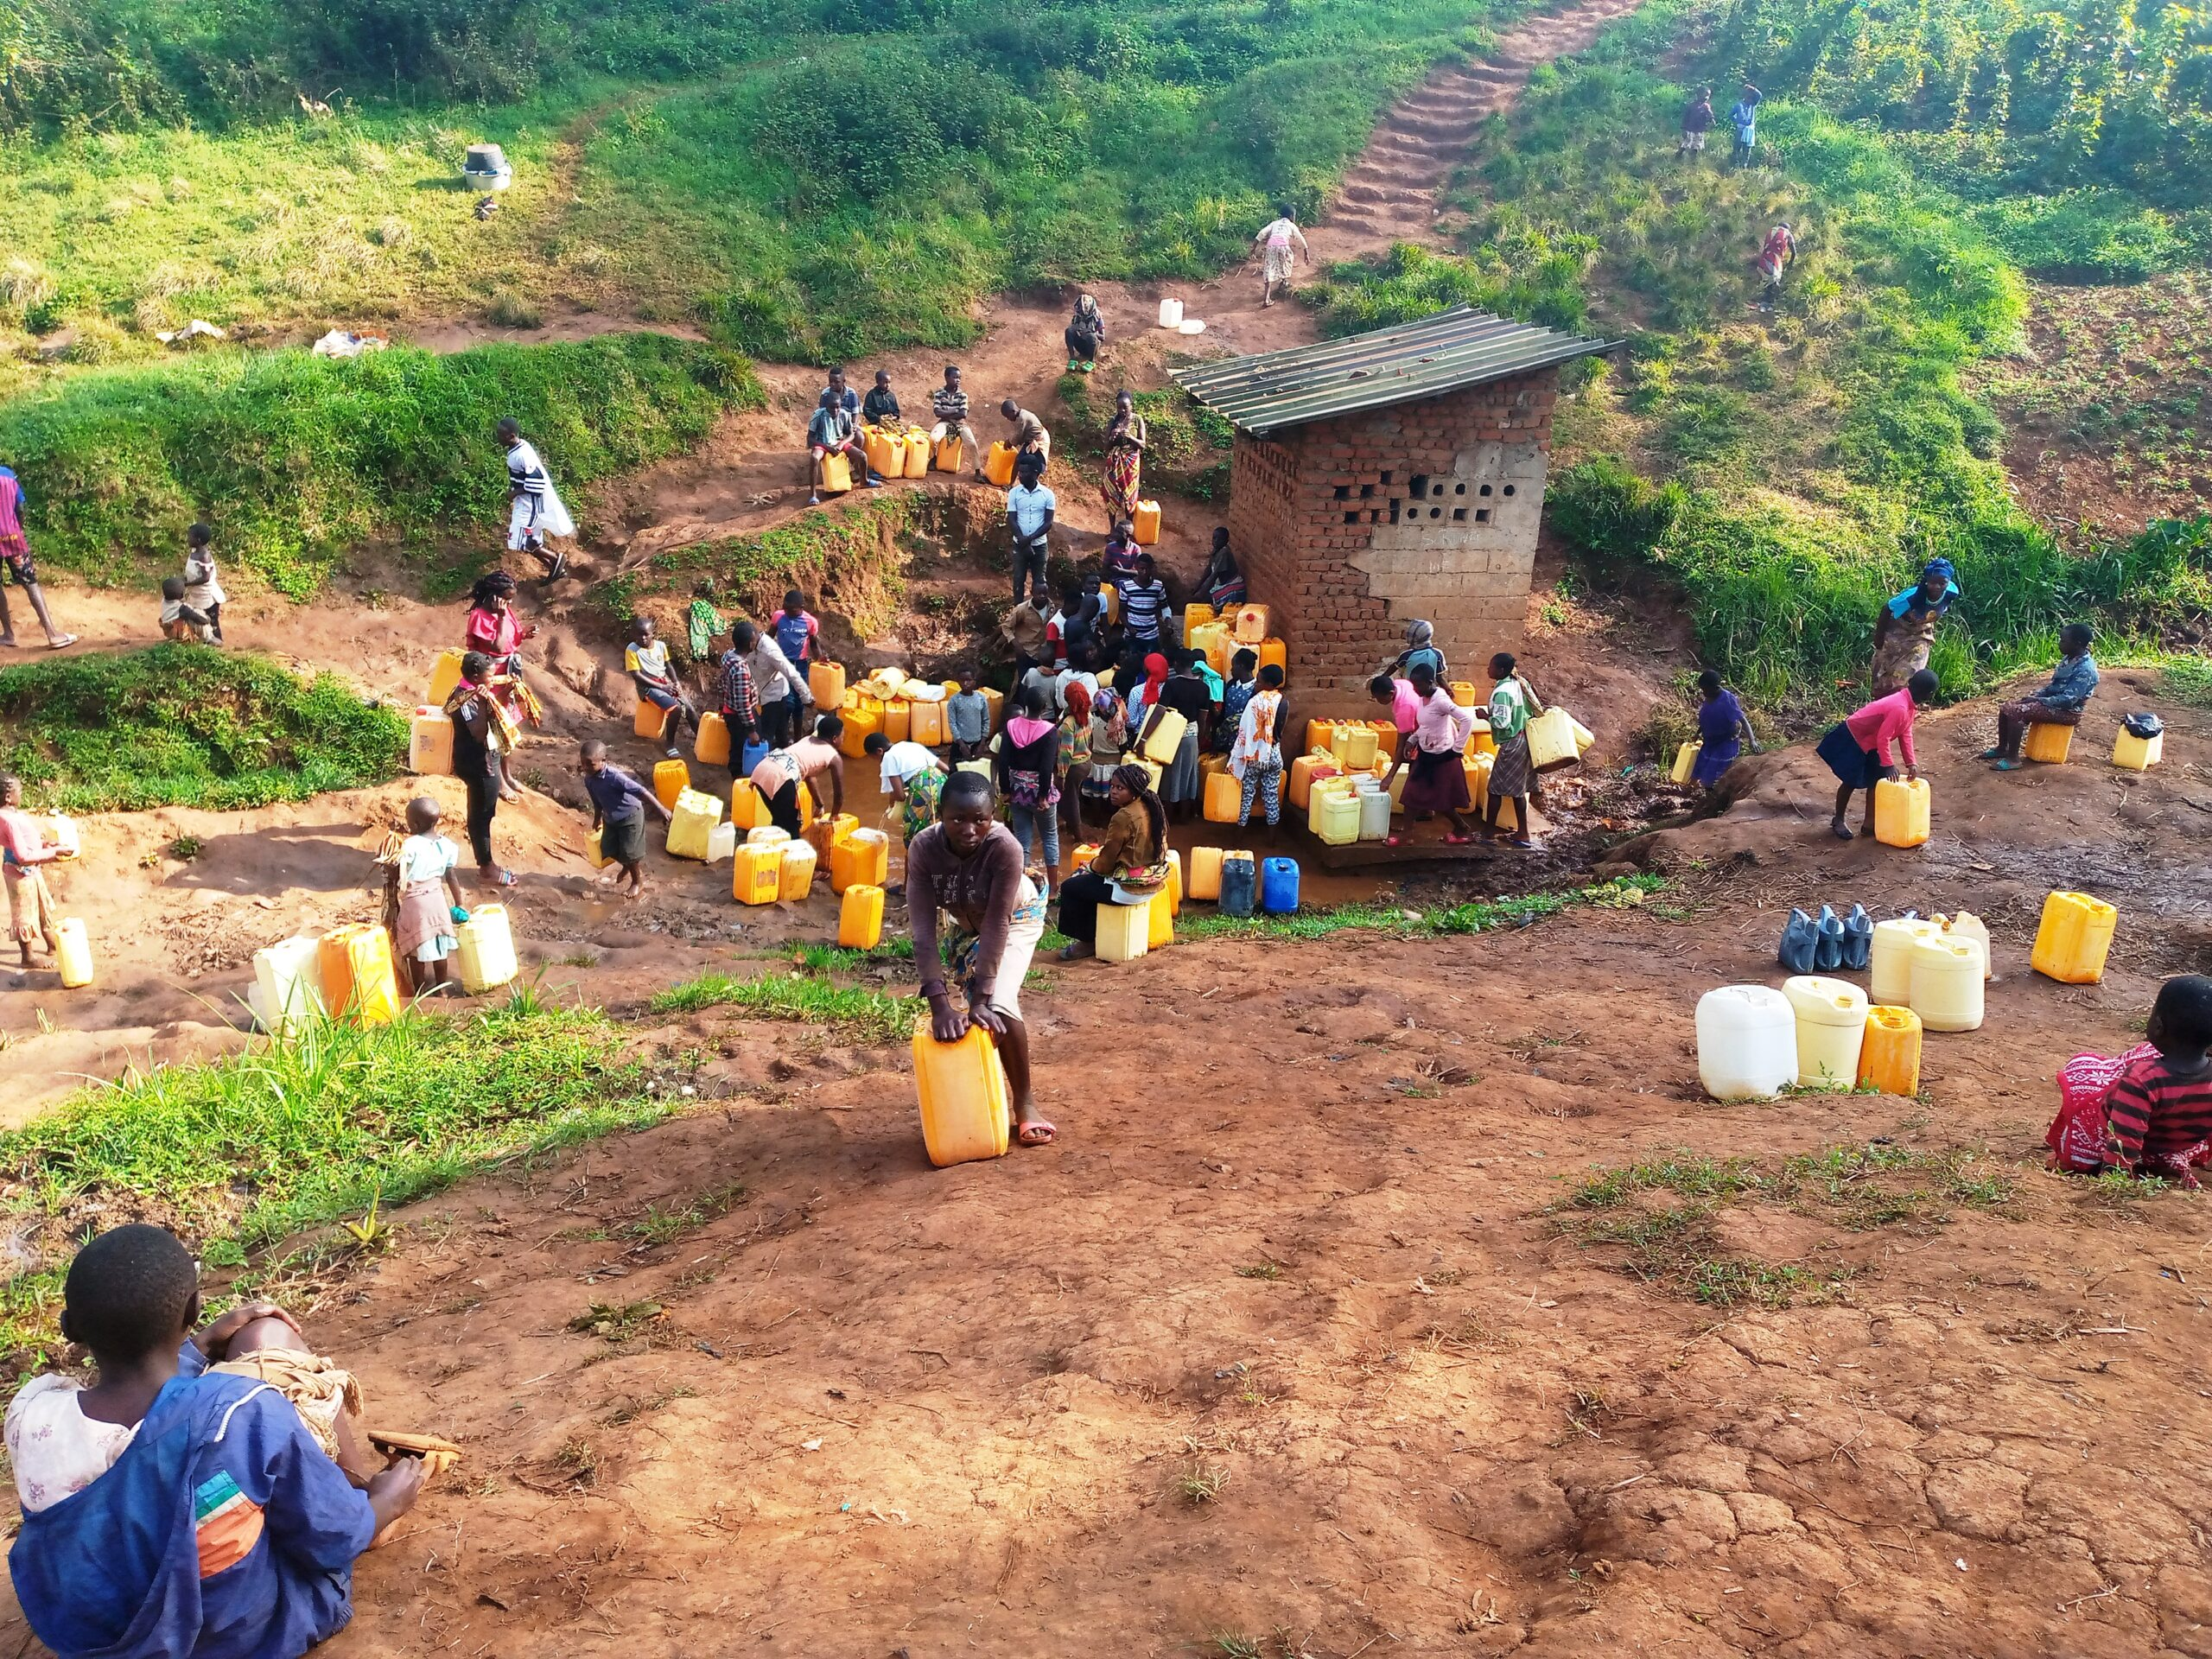 Water at a price: The controversial management of water sources built by NGOs in Butembo, DR Congo